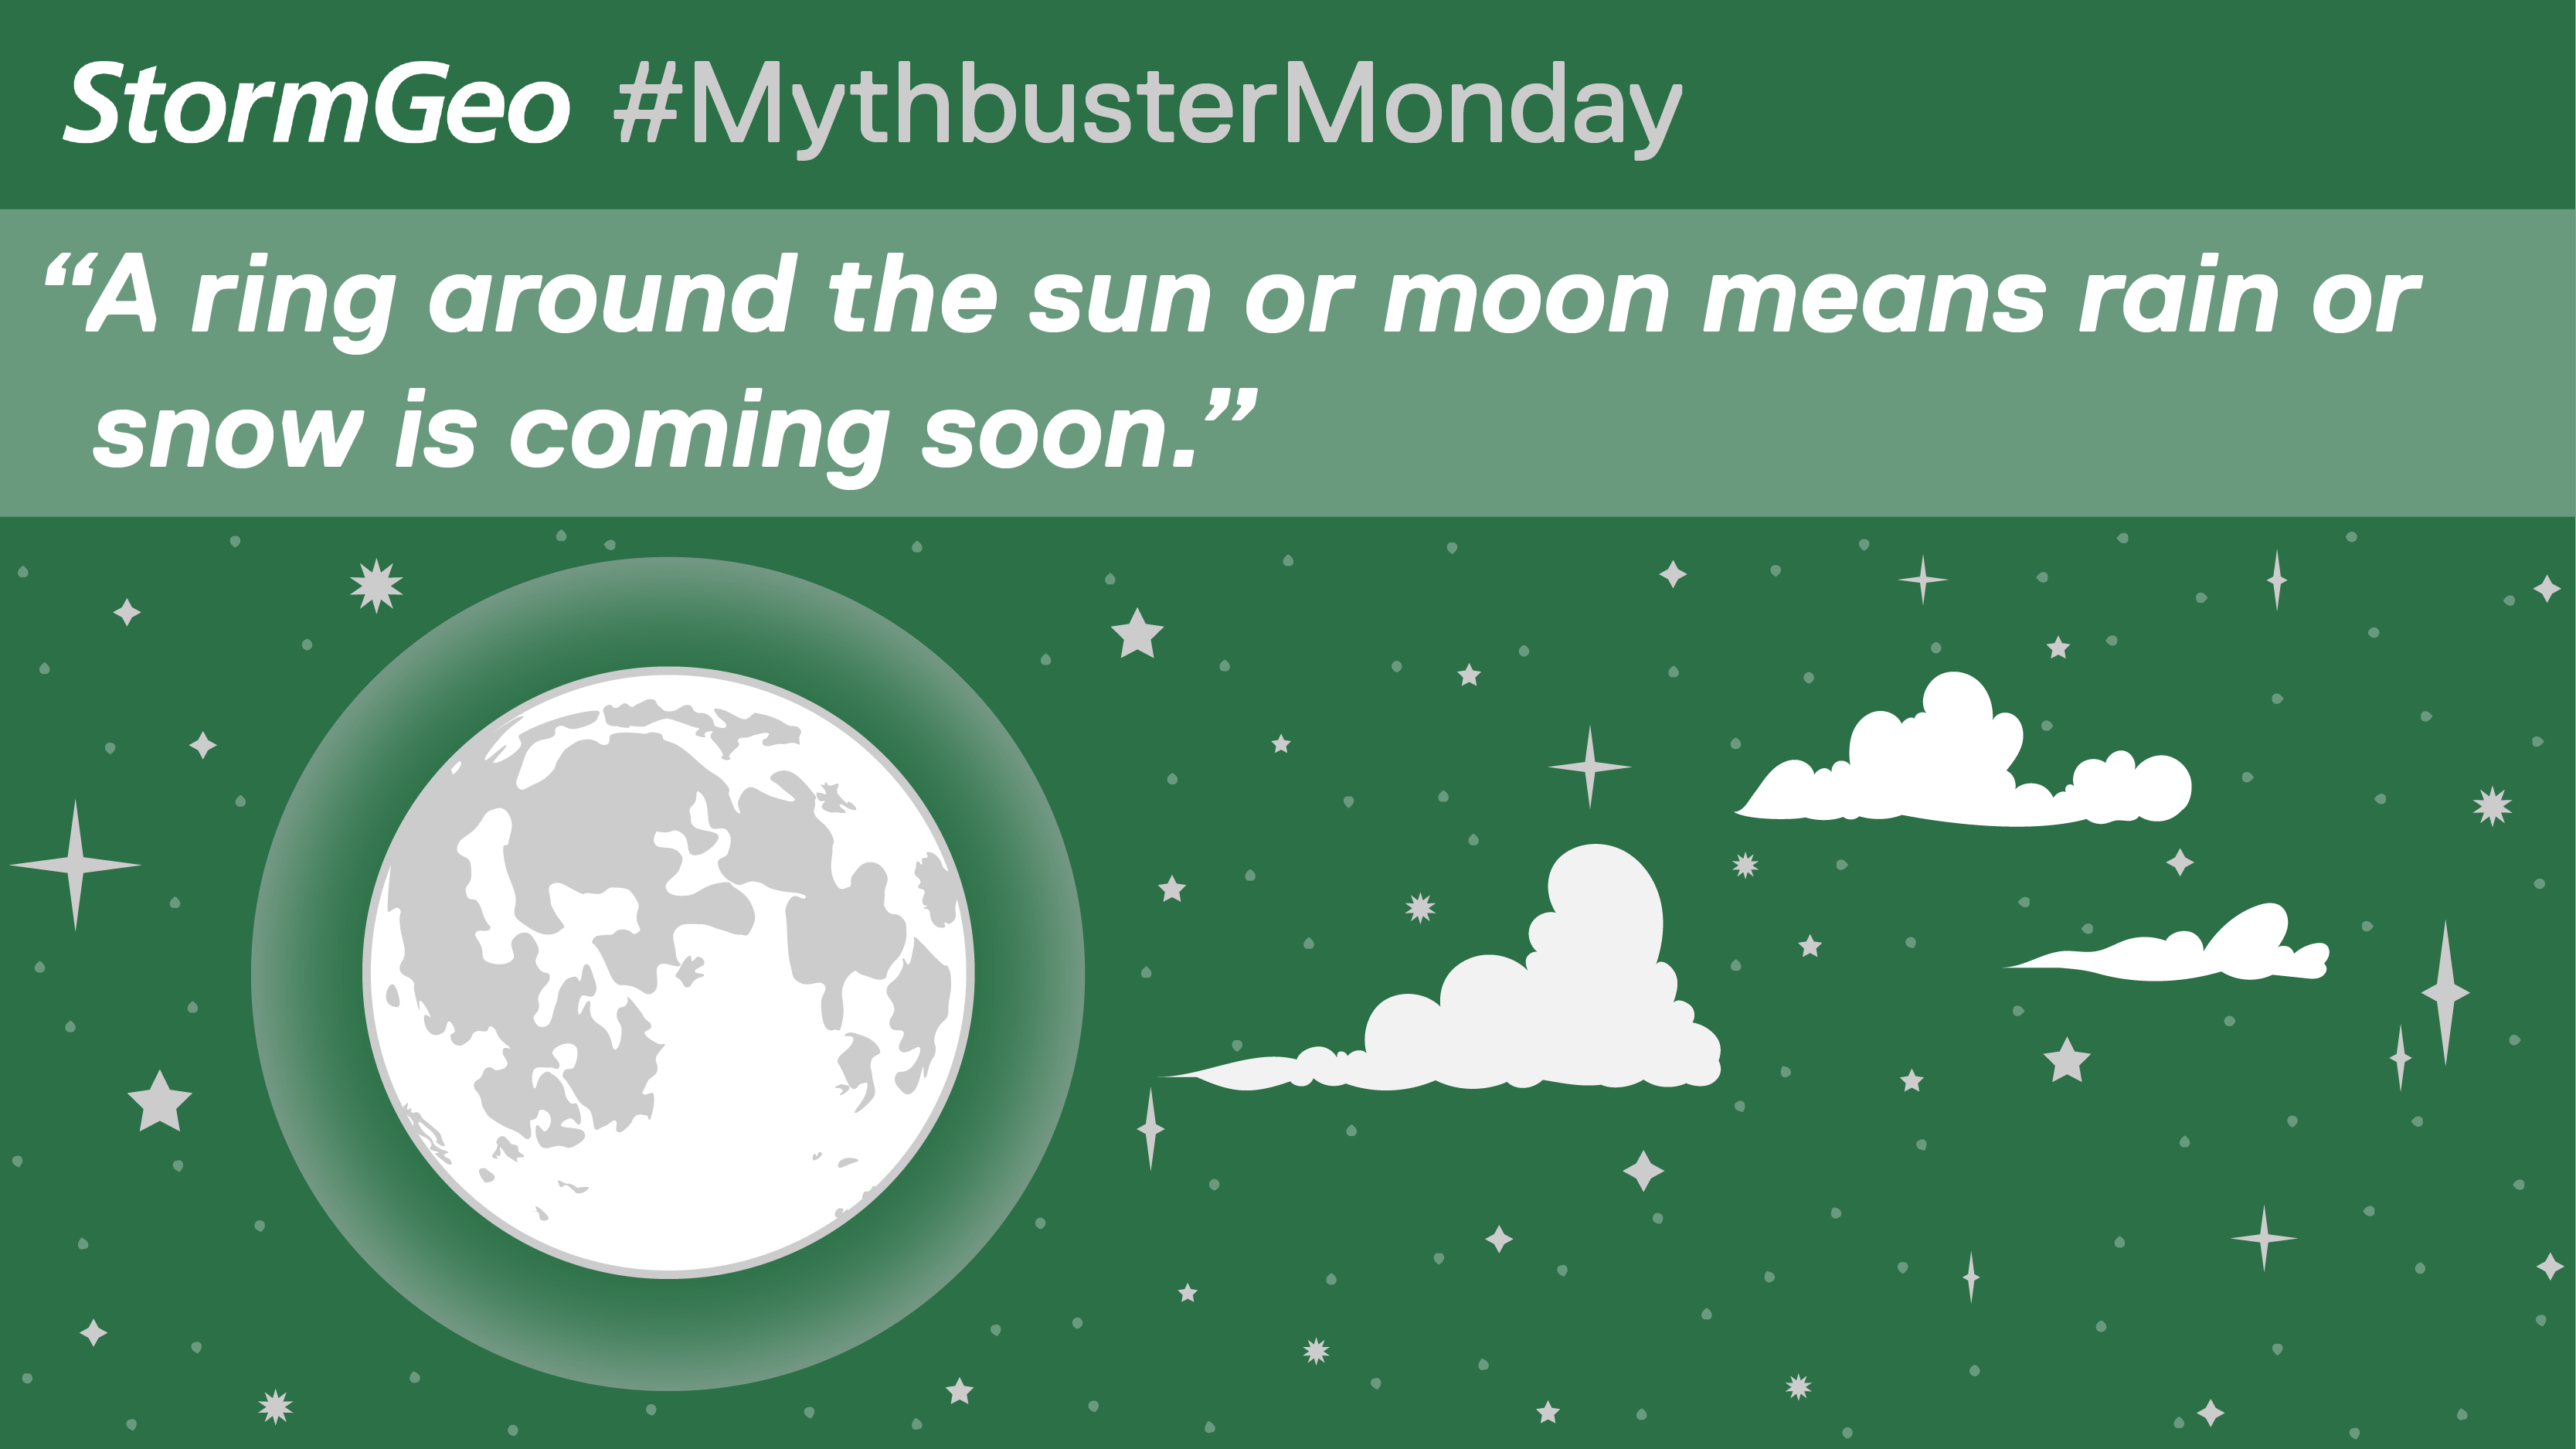 Mythbuster Monday moon 2